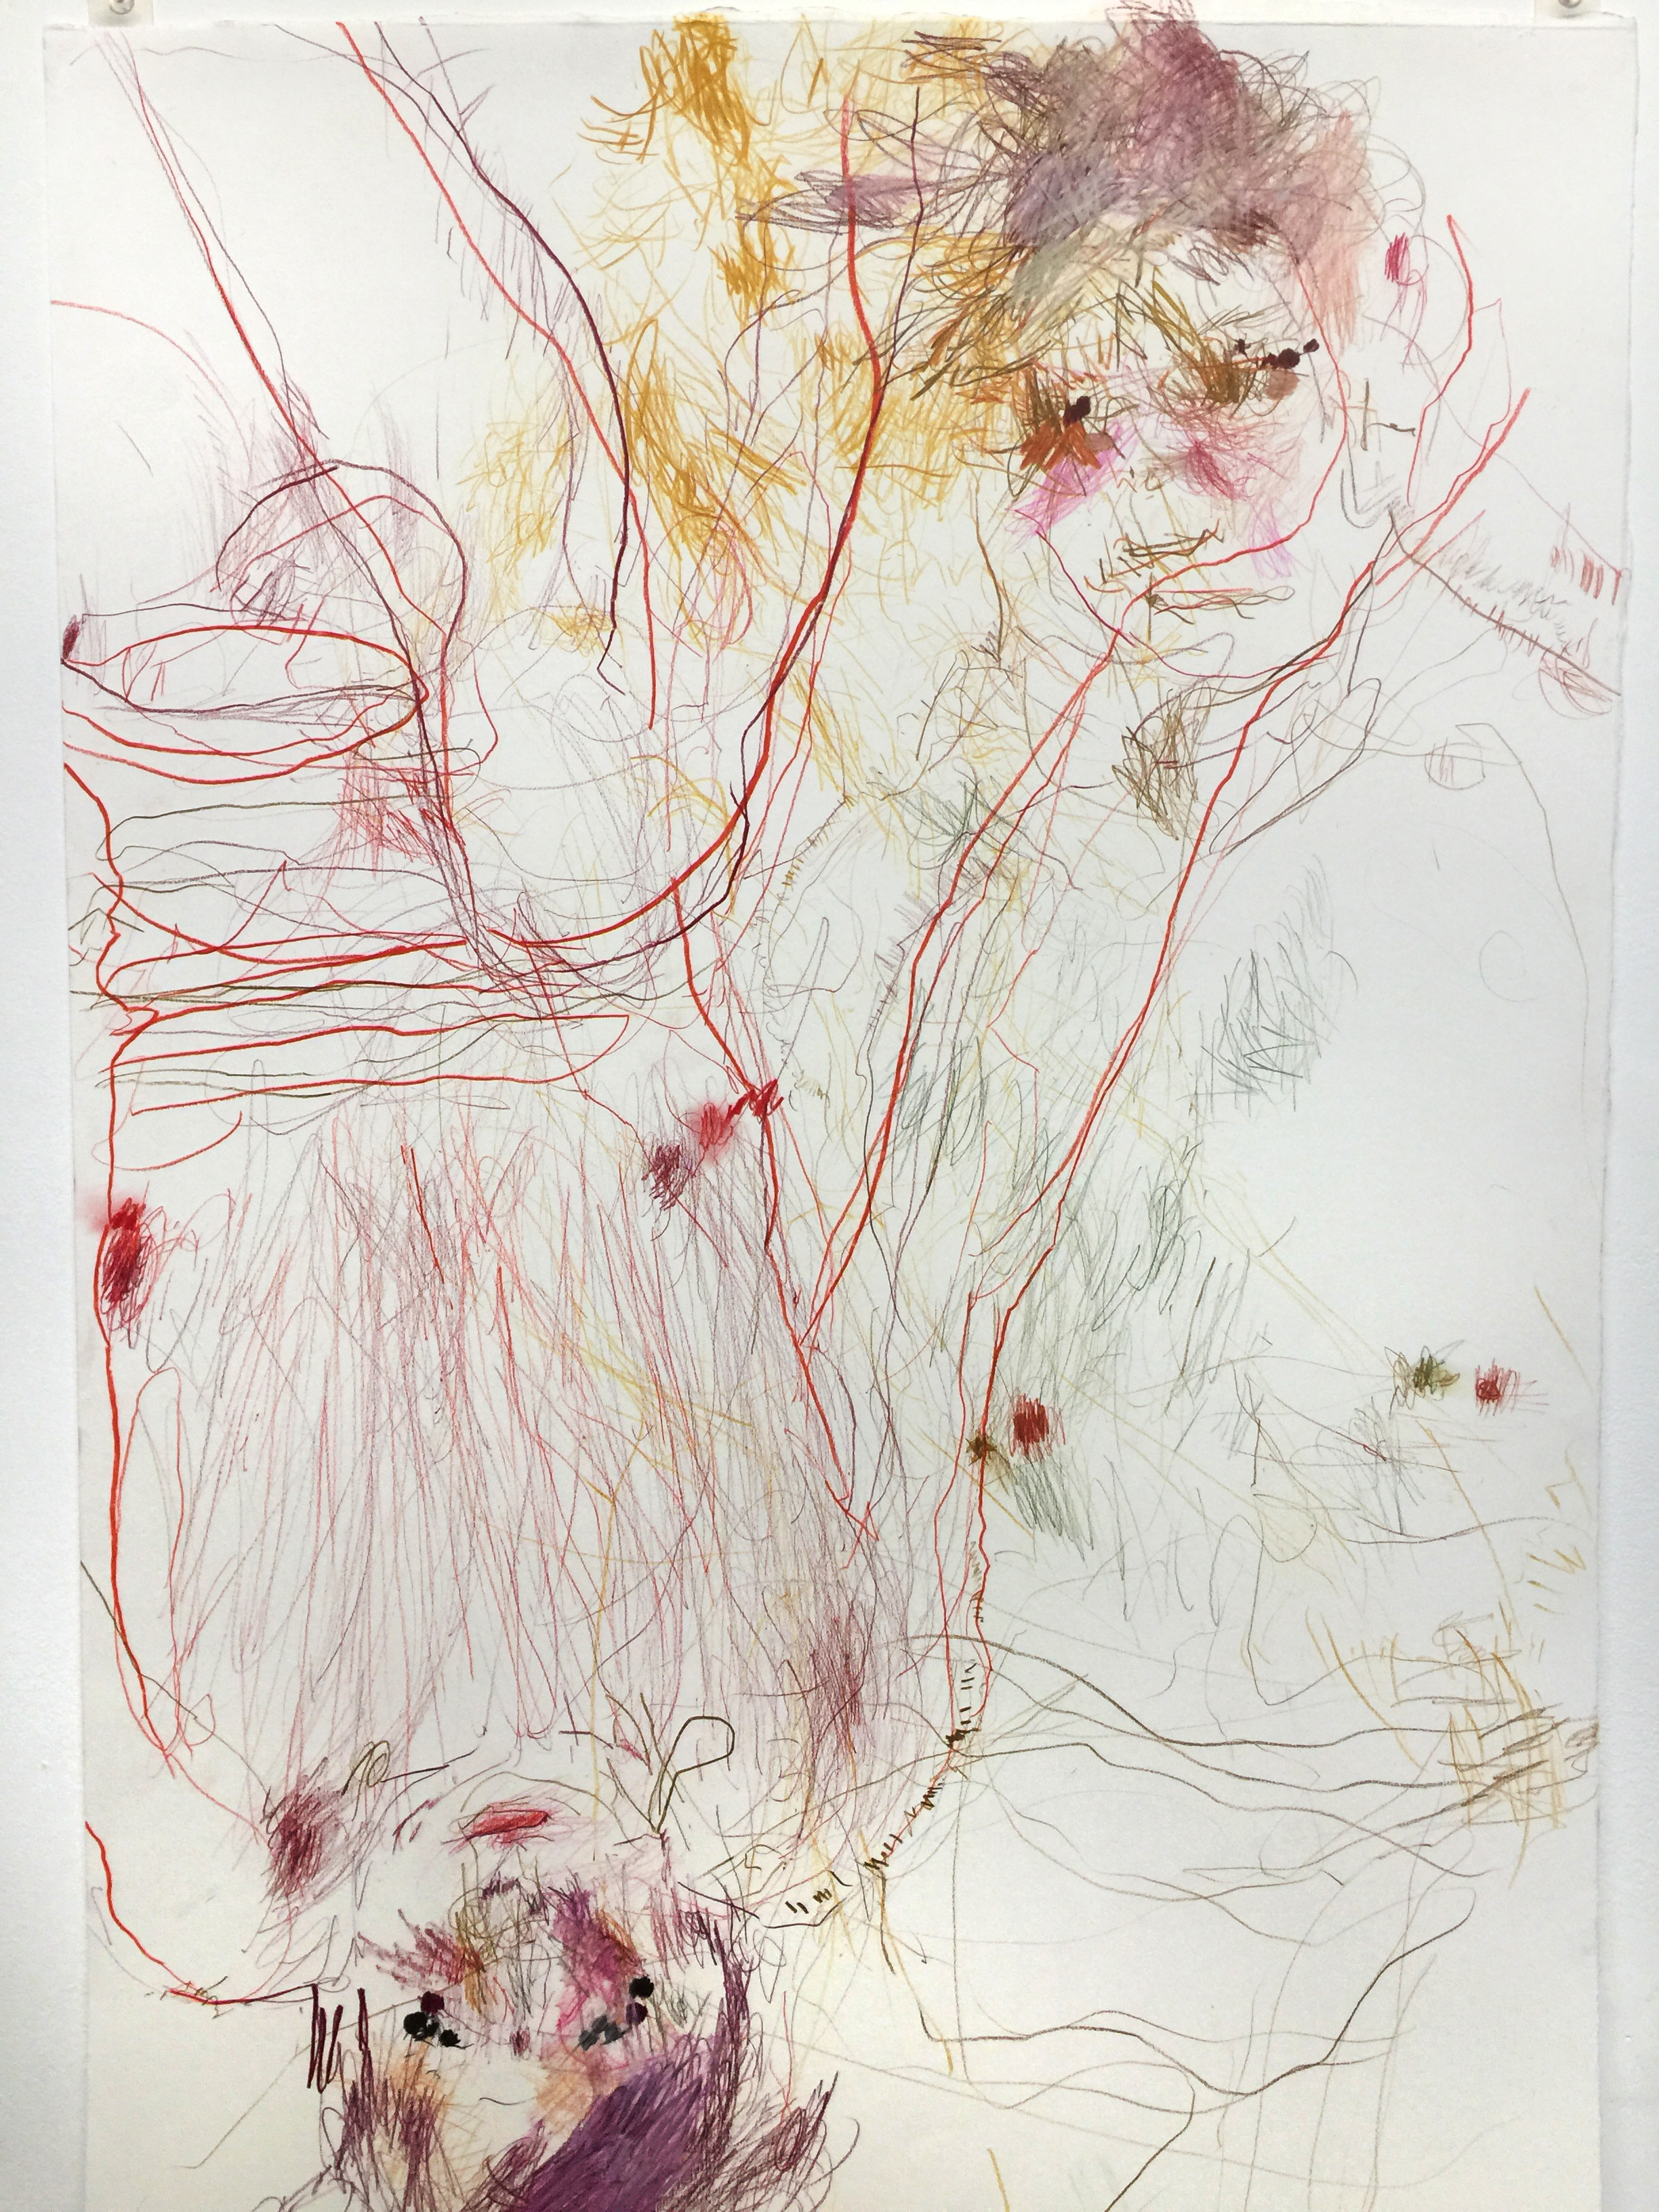 Michael Angove 'Untitled Figure 1' 2018 Pencil on Paper